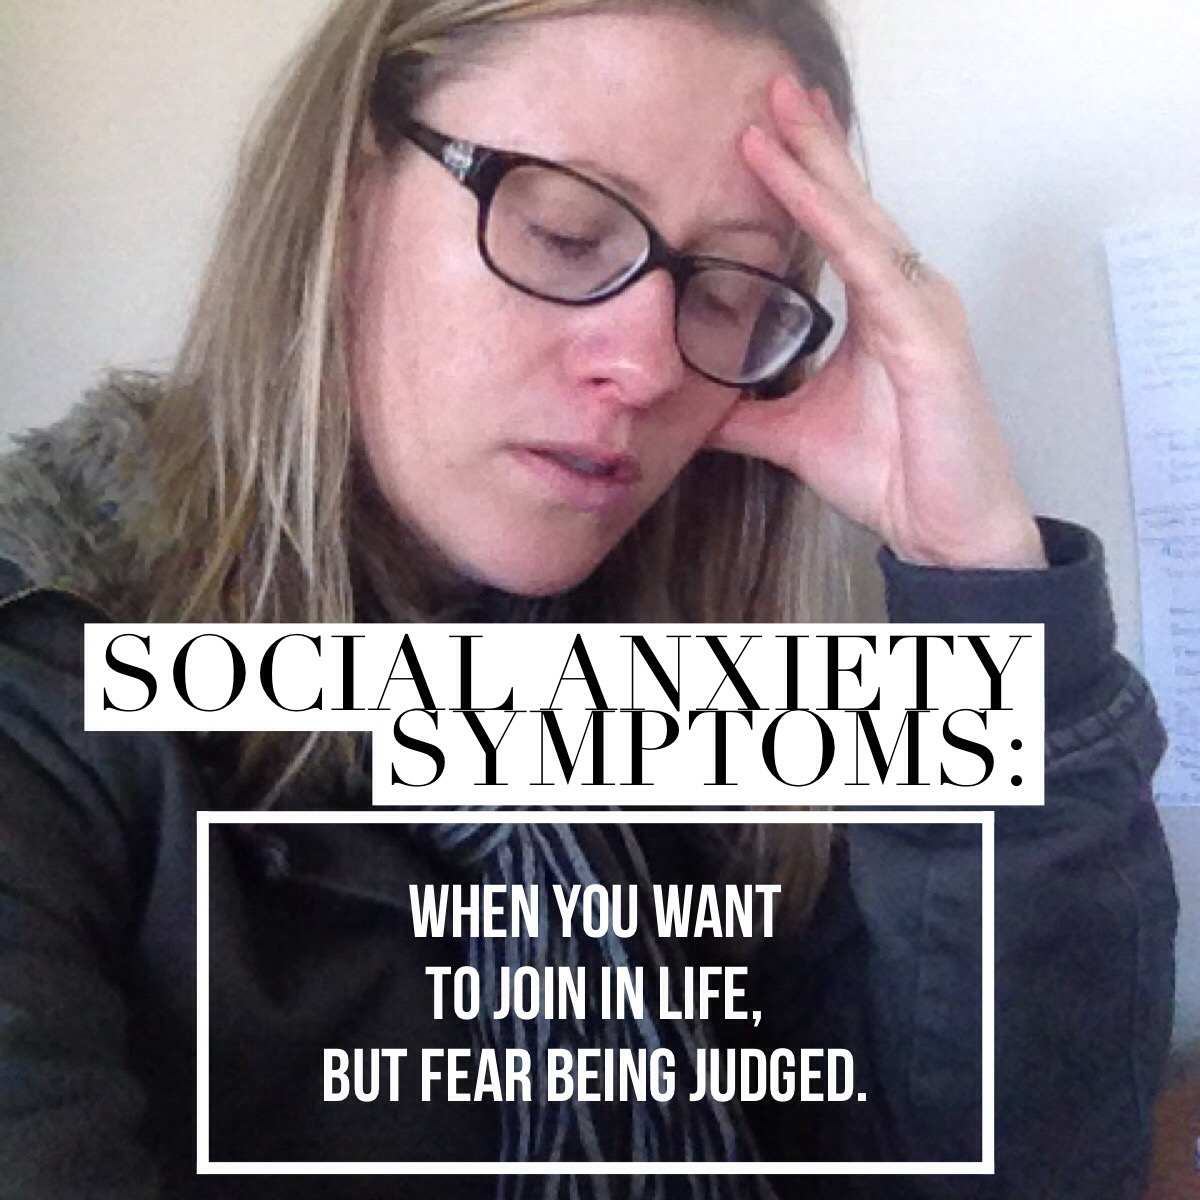 Social anxiety symptoms: Embarrassing truths